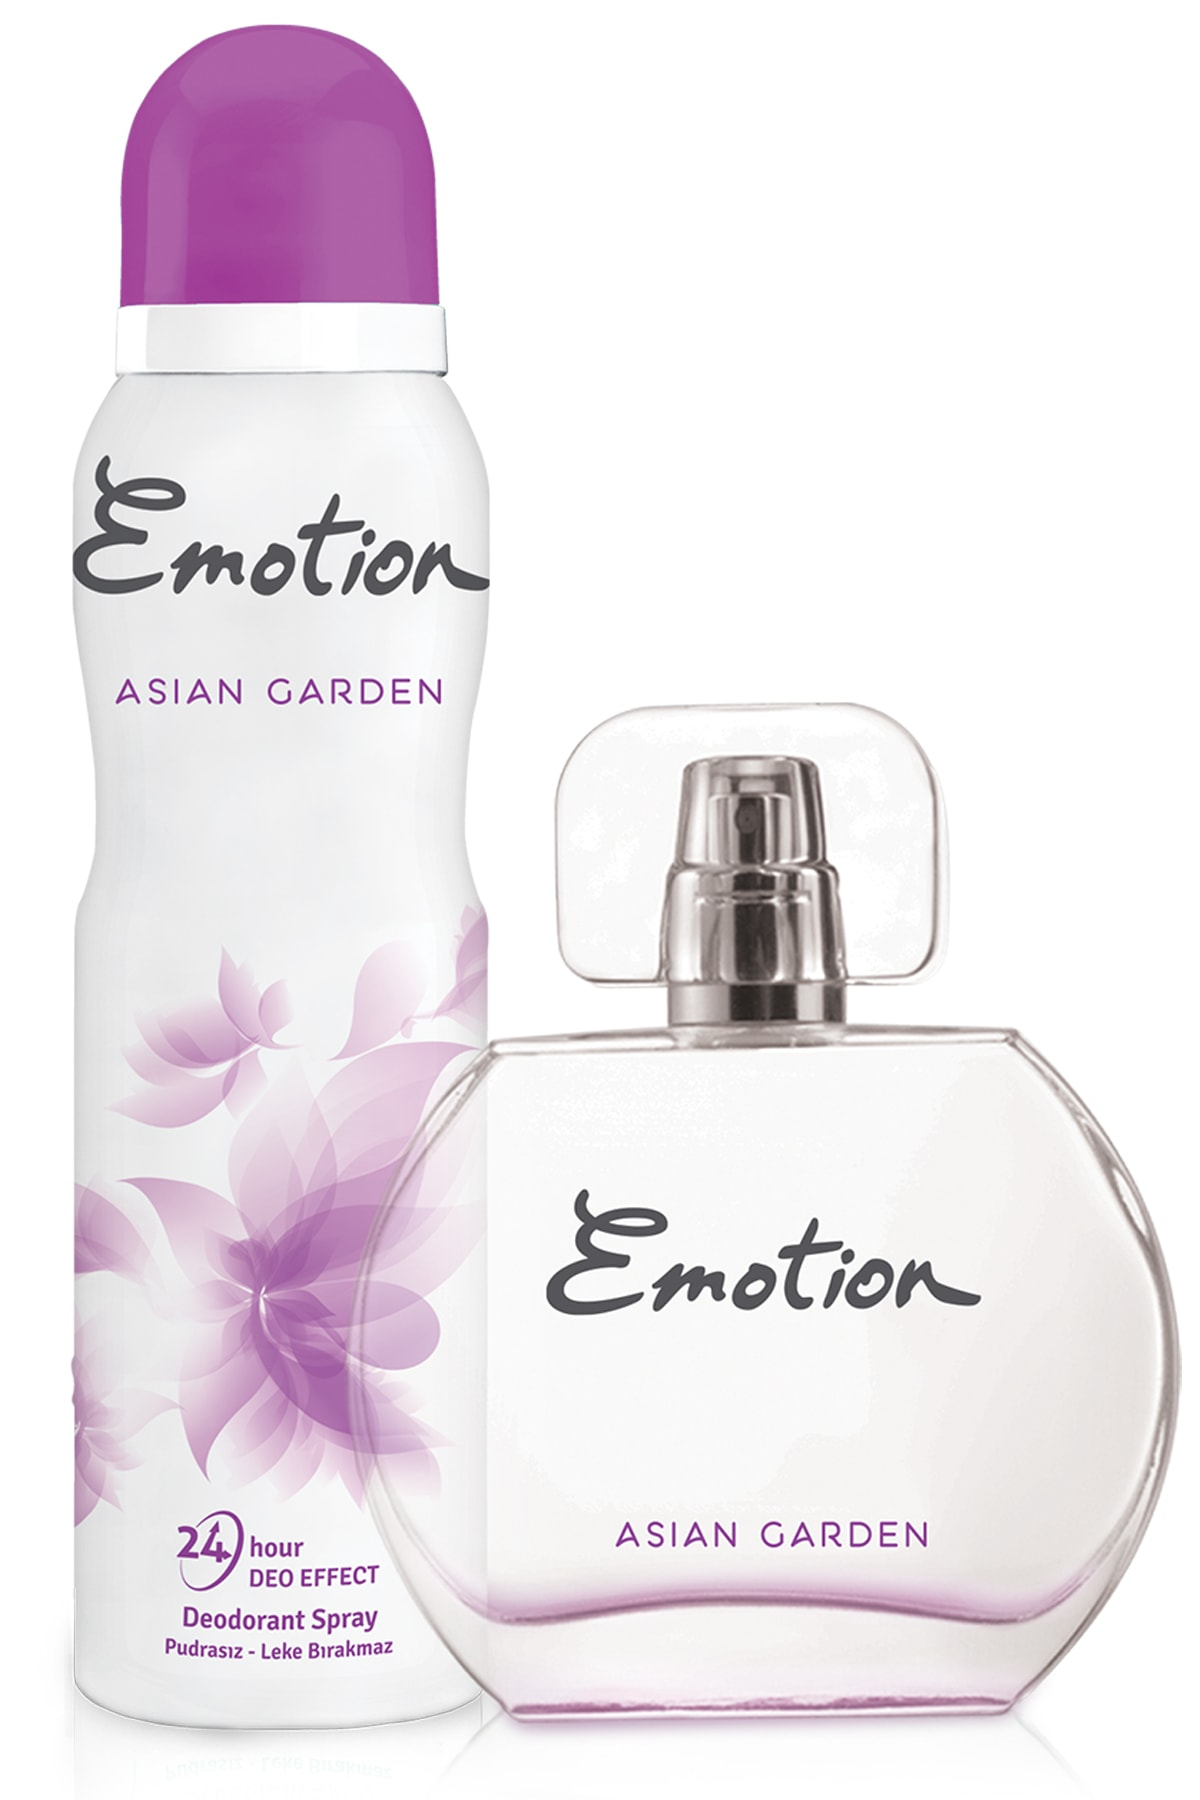 Emotion Asian garden Edt Deodorant Kadın Parfüm Seti 50 ml + 150 ml 2